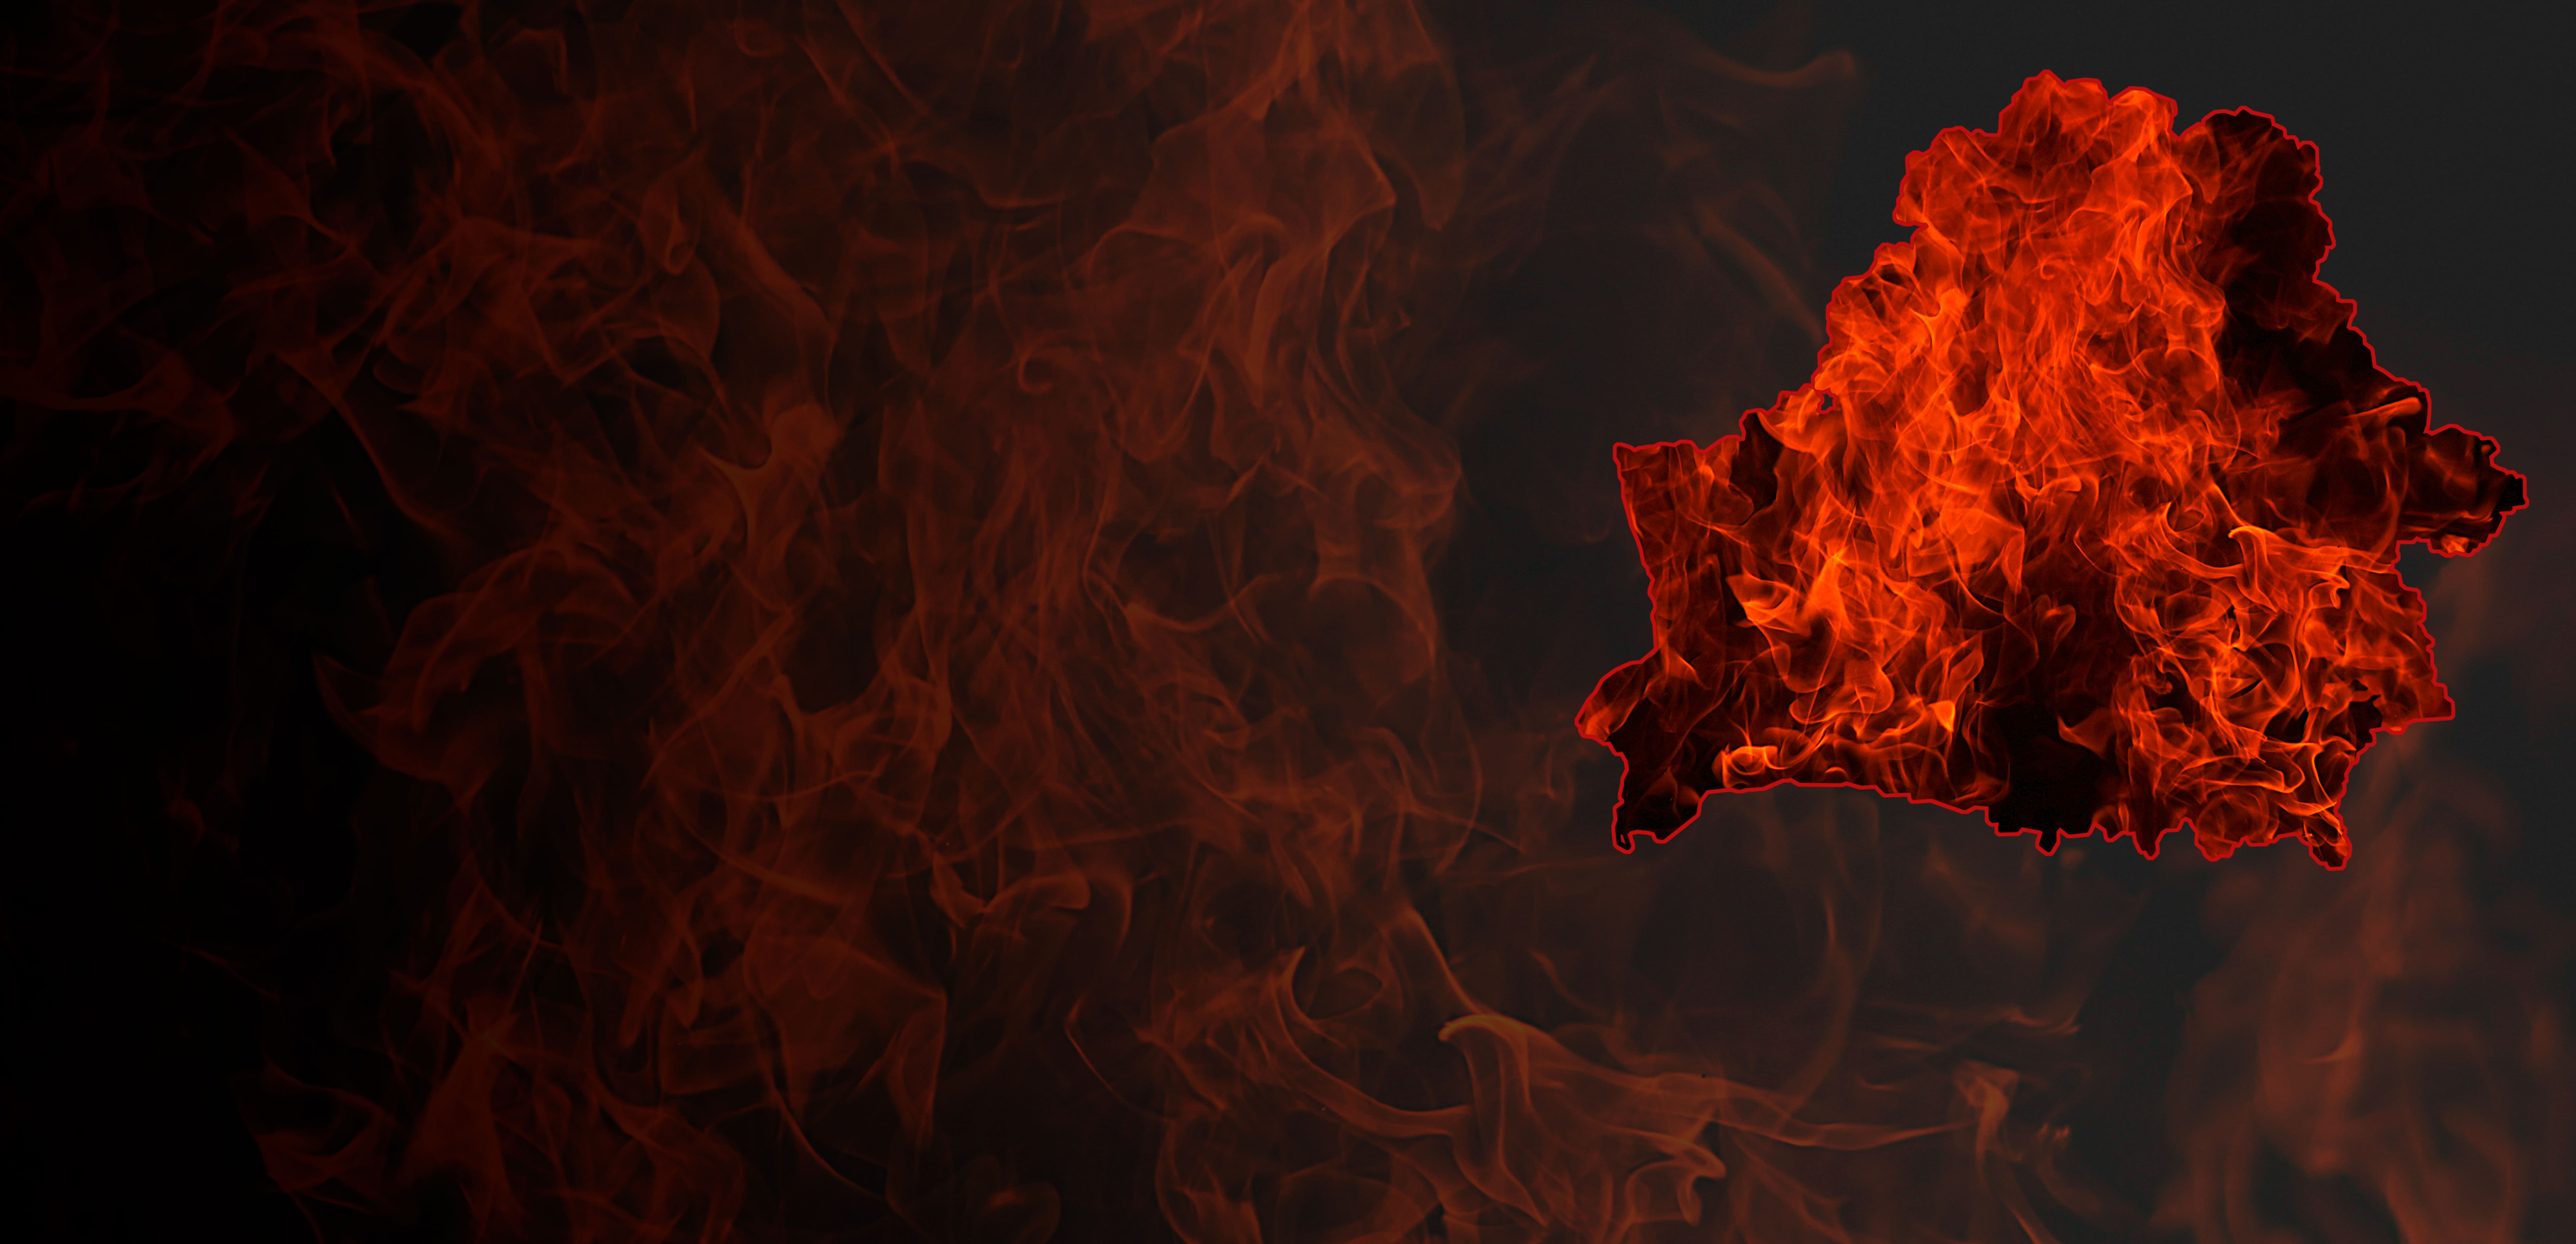 light-texture-isolated-orange-red-flame-1062195-pxhere-com